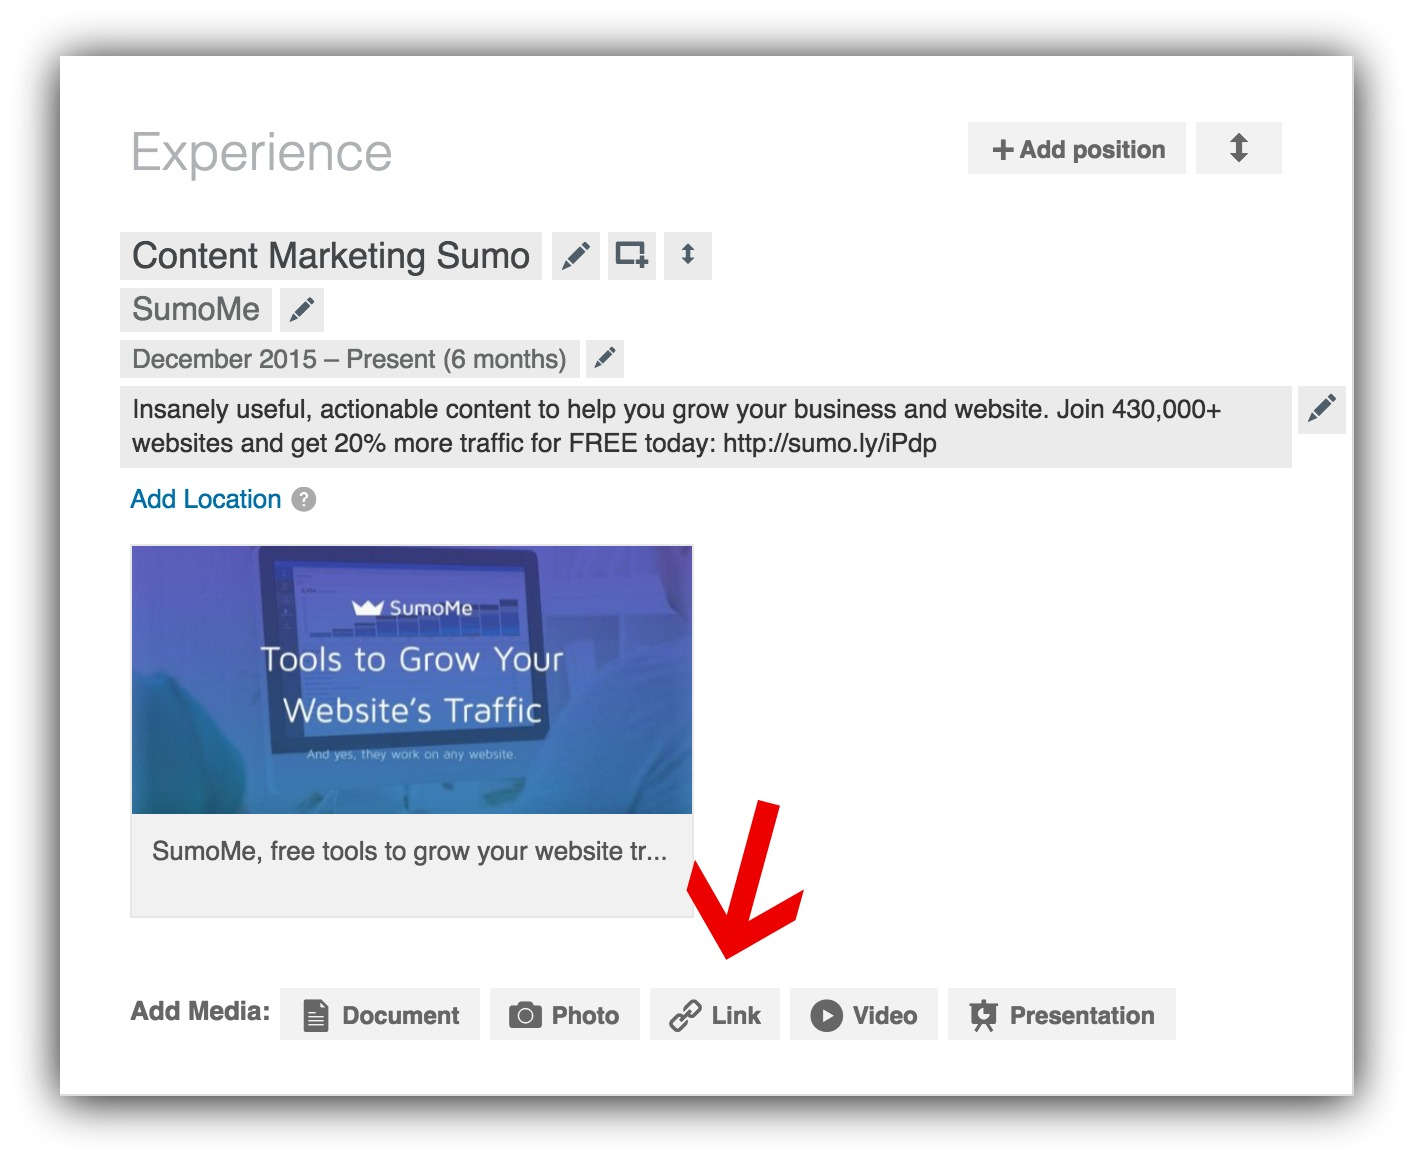 Screenshot showing how you can add a link to a resume